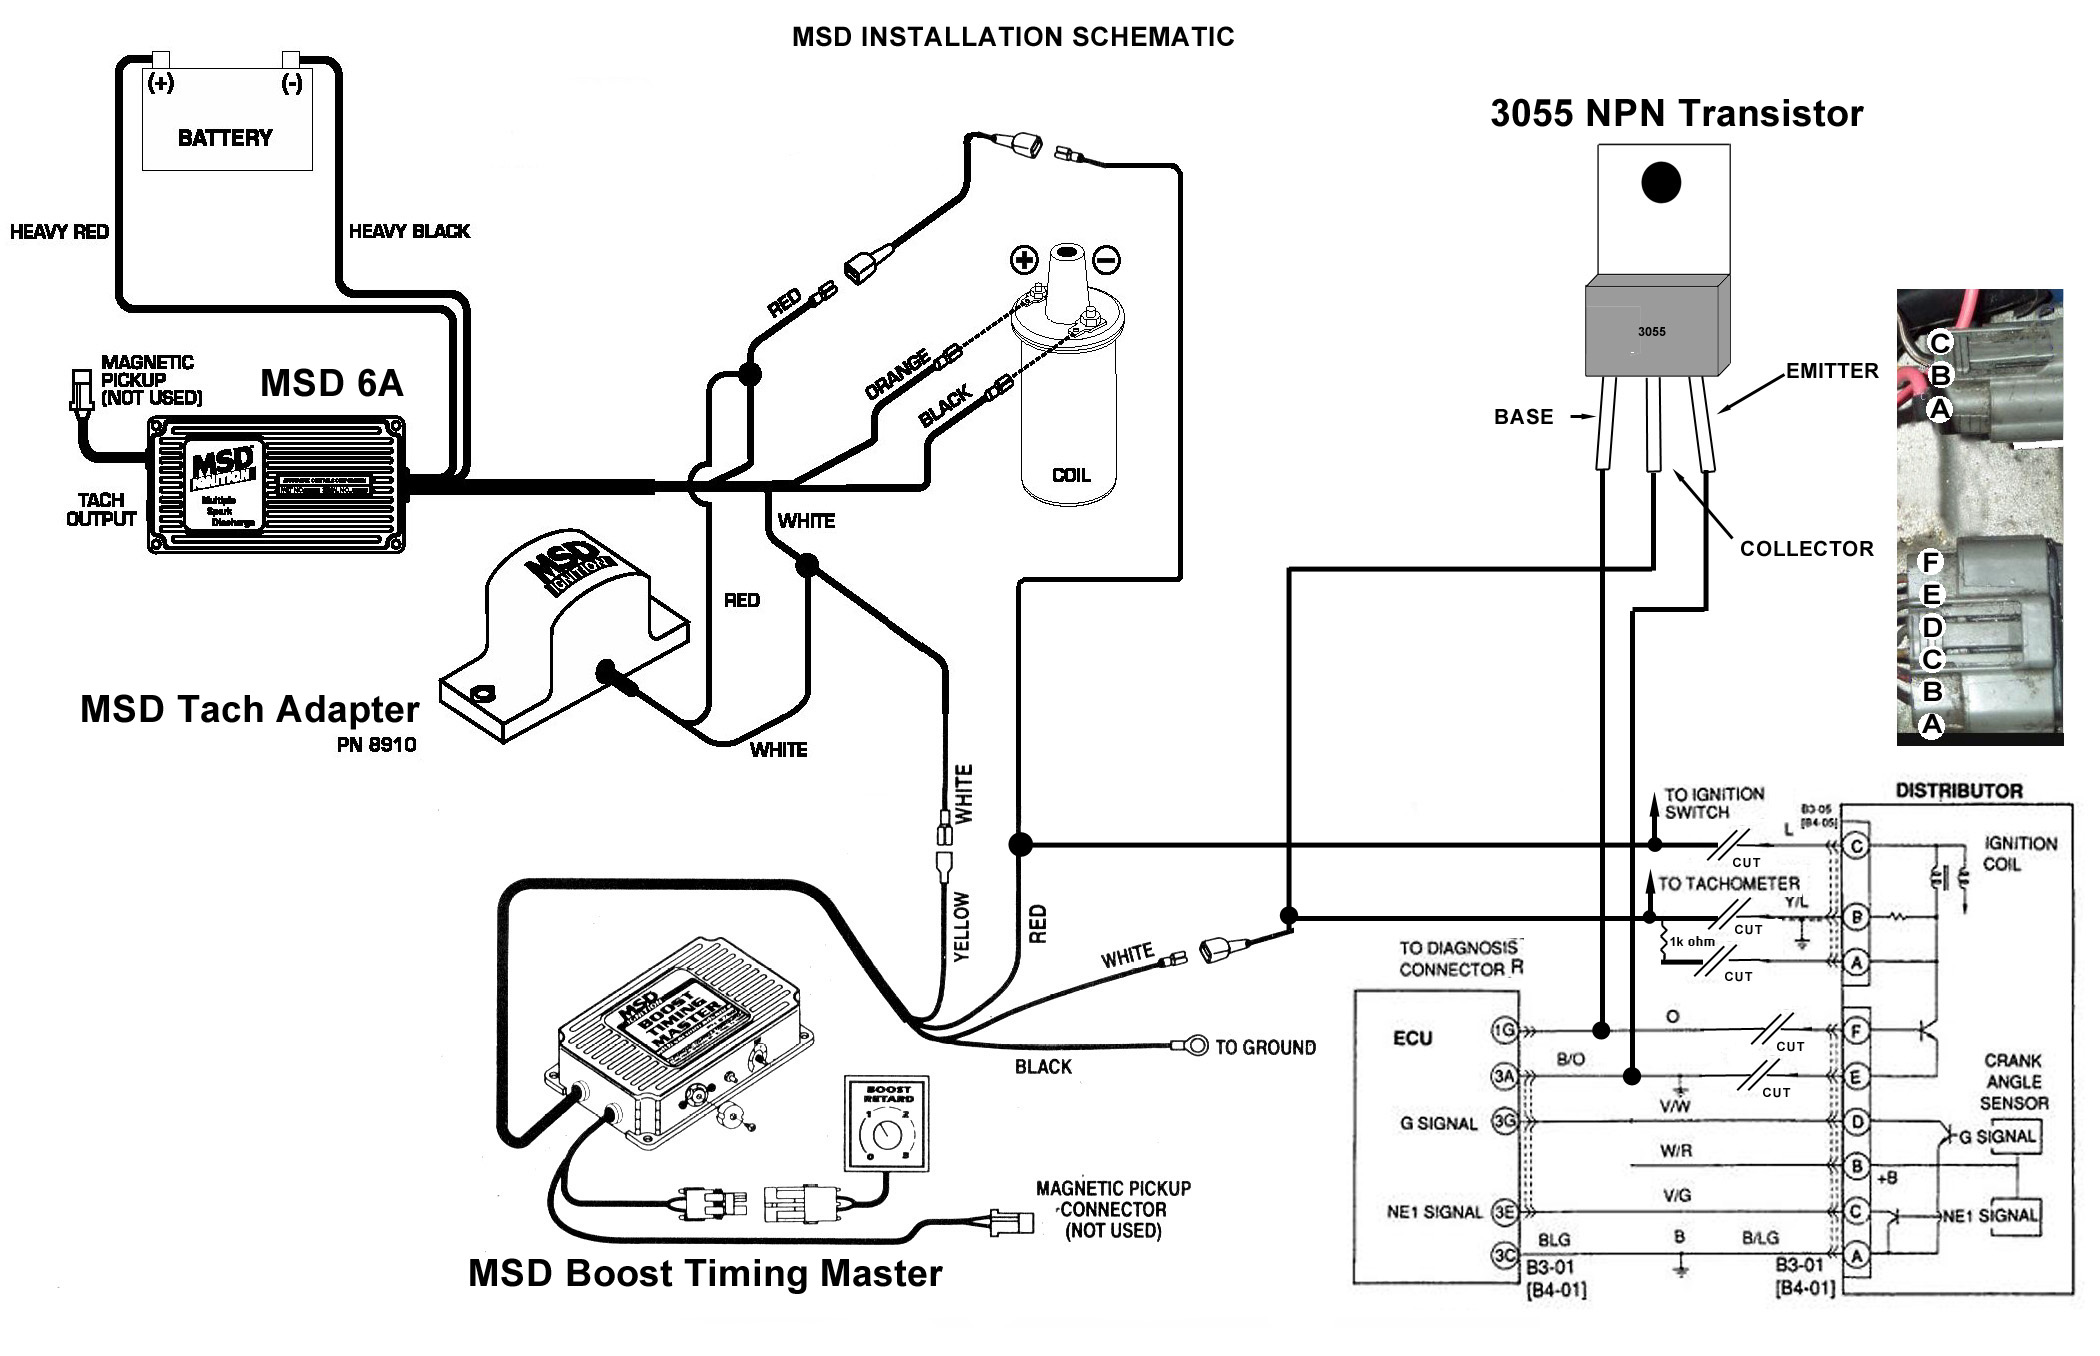 mazda 323 stereo wiring diagram with Mazda Mx 5 Wiring Diagram on Mazda 323 Wiring Diagram Stereo as well Mazda V6 Wiring Diagram further Spirituality Exploded View Of Stereo besides Mazda 3 Mps Wiring Diagram moreover 1995 Mazda Miata Wiring Diagram.